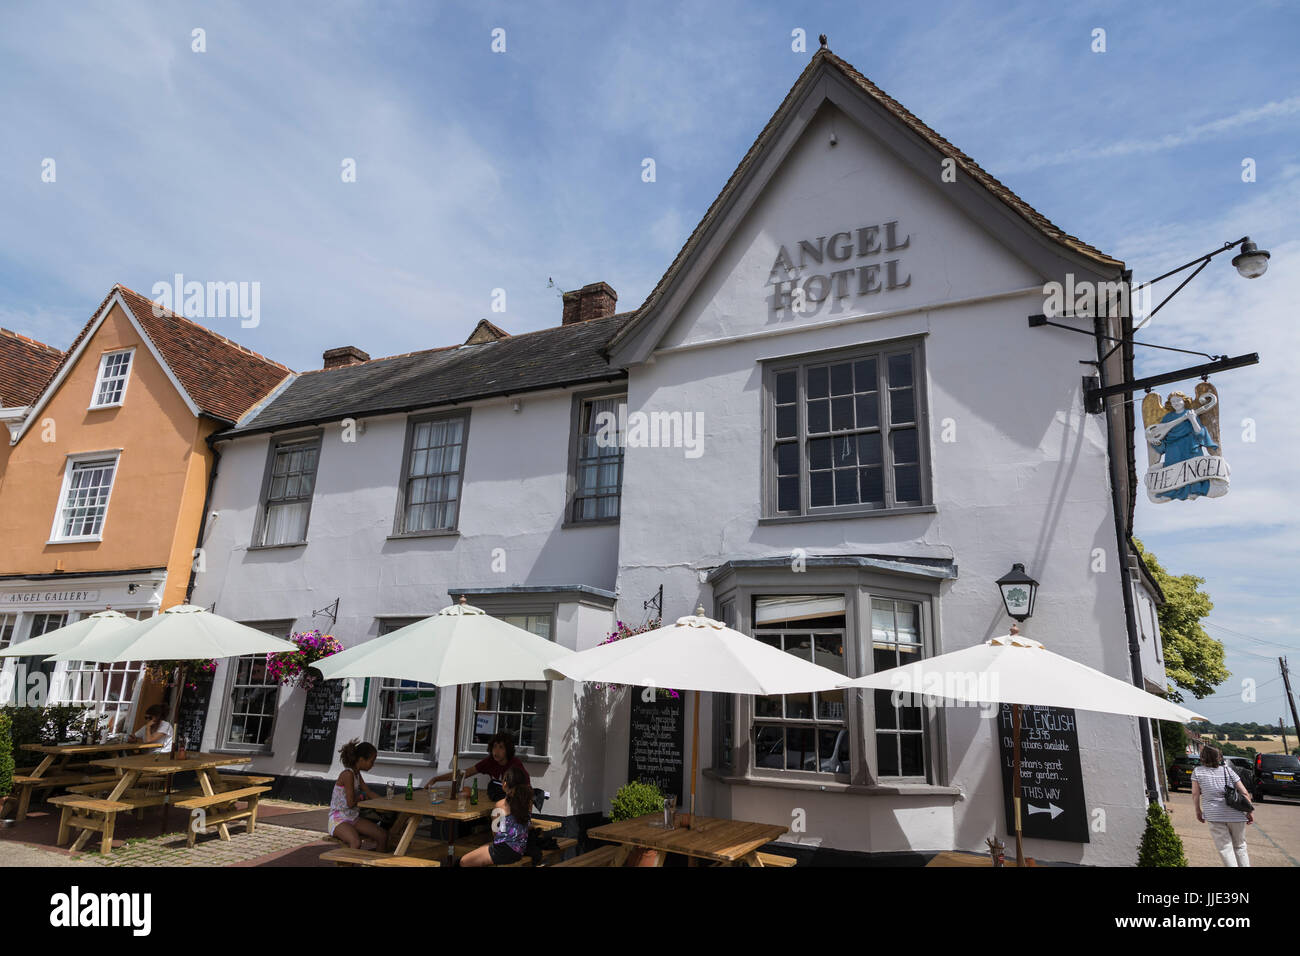 Angel Hotel in Lavenham on a Sunny Summer Day Stock Photo